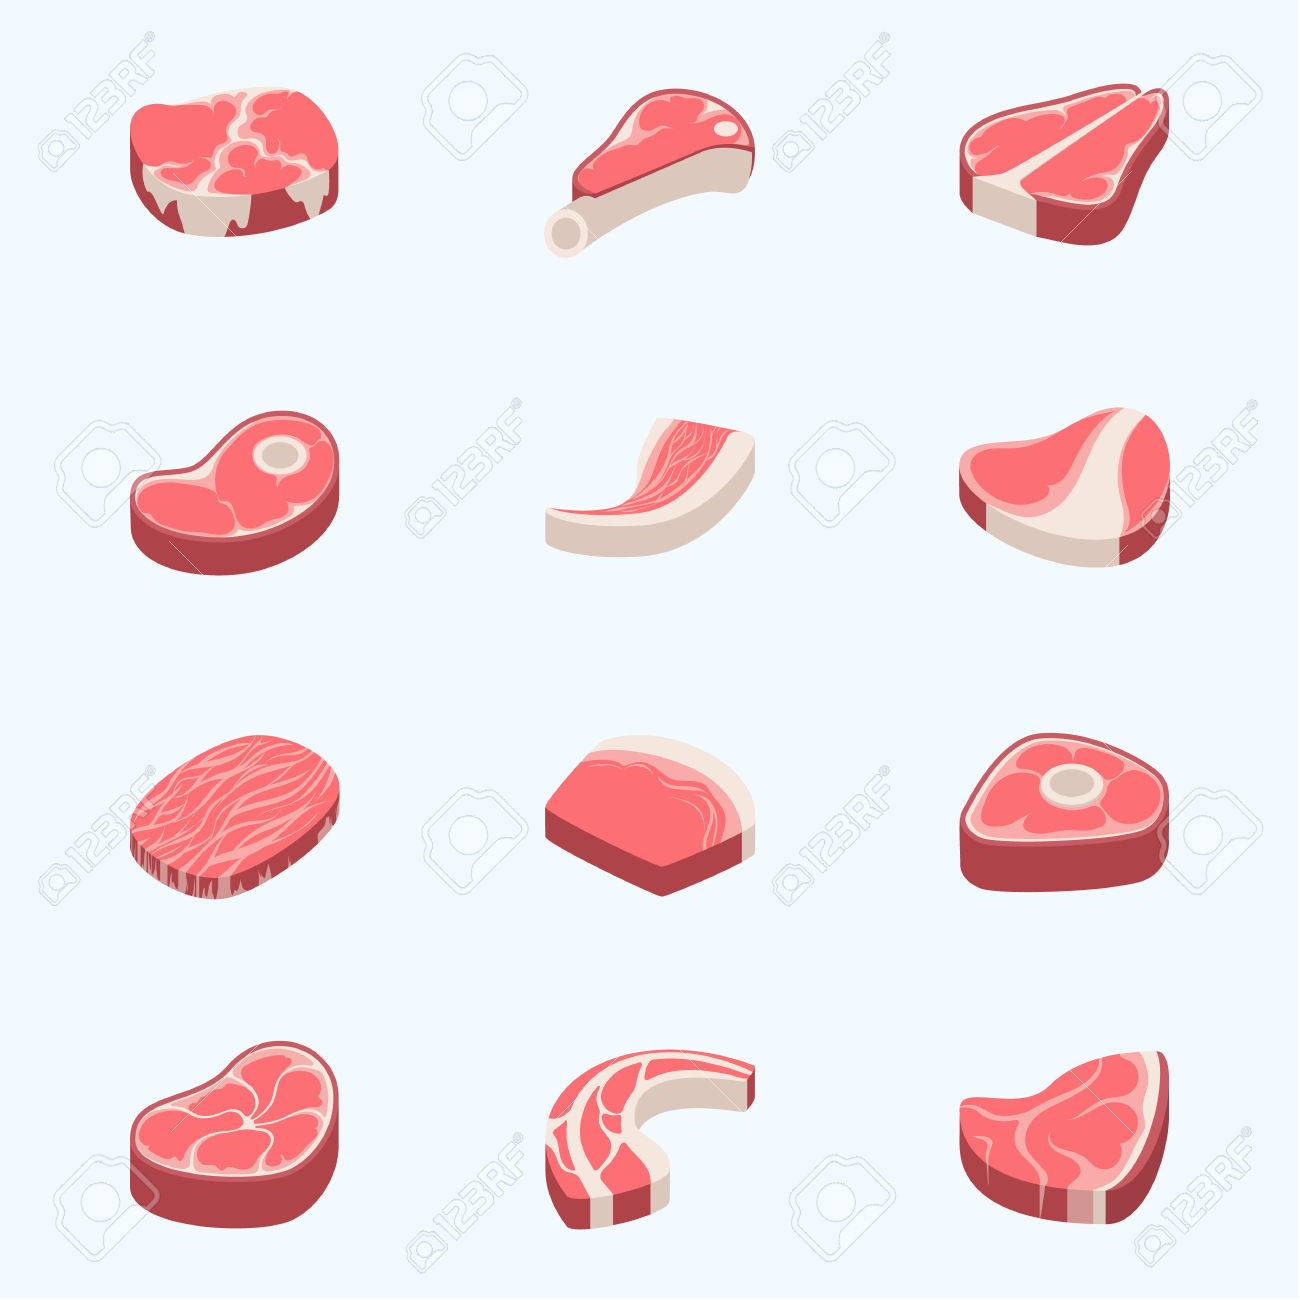 Beef steak raw meat food red fresh cut butcher uncooked chop barbecue bbq slice ingredient vector illustration - 78909646